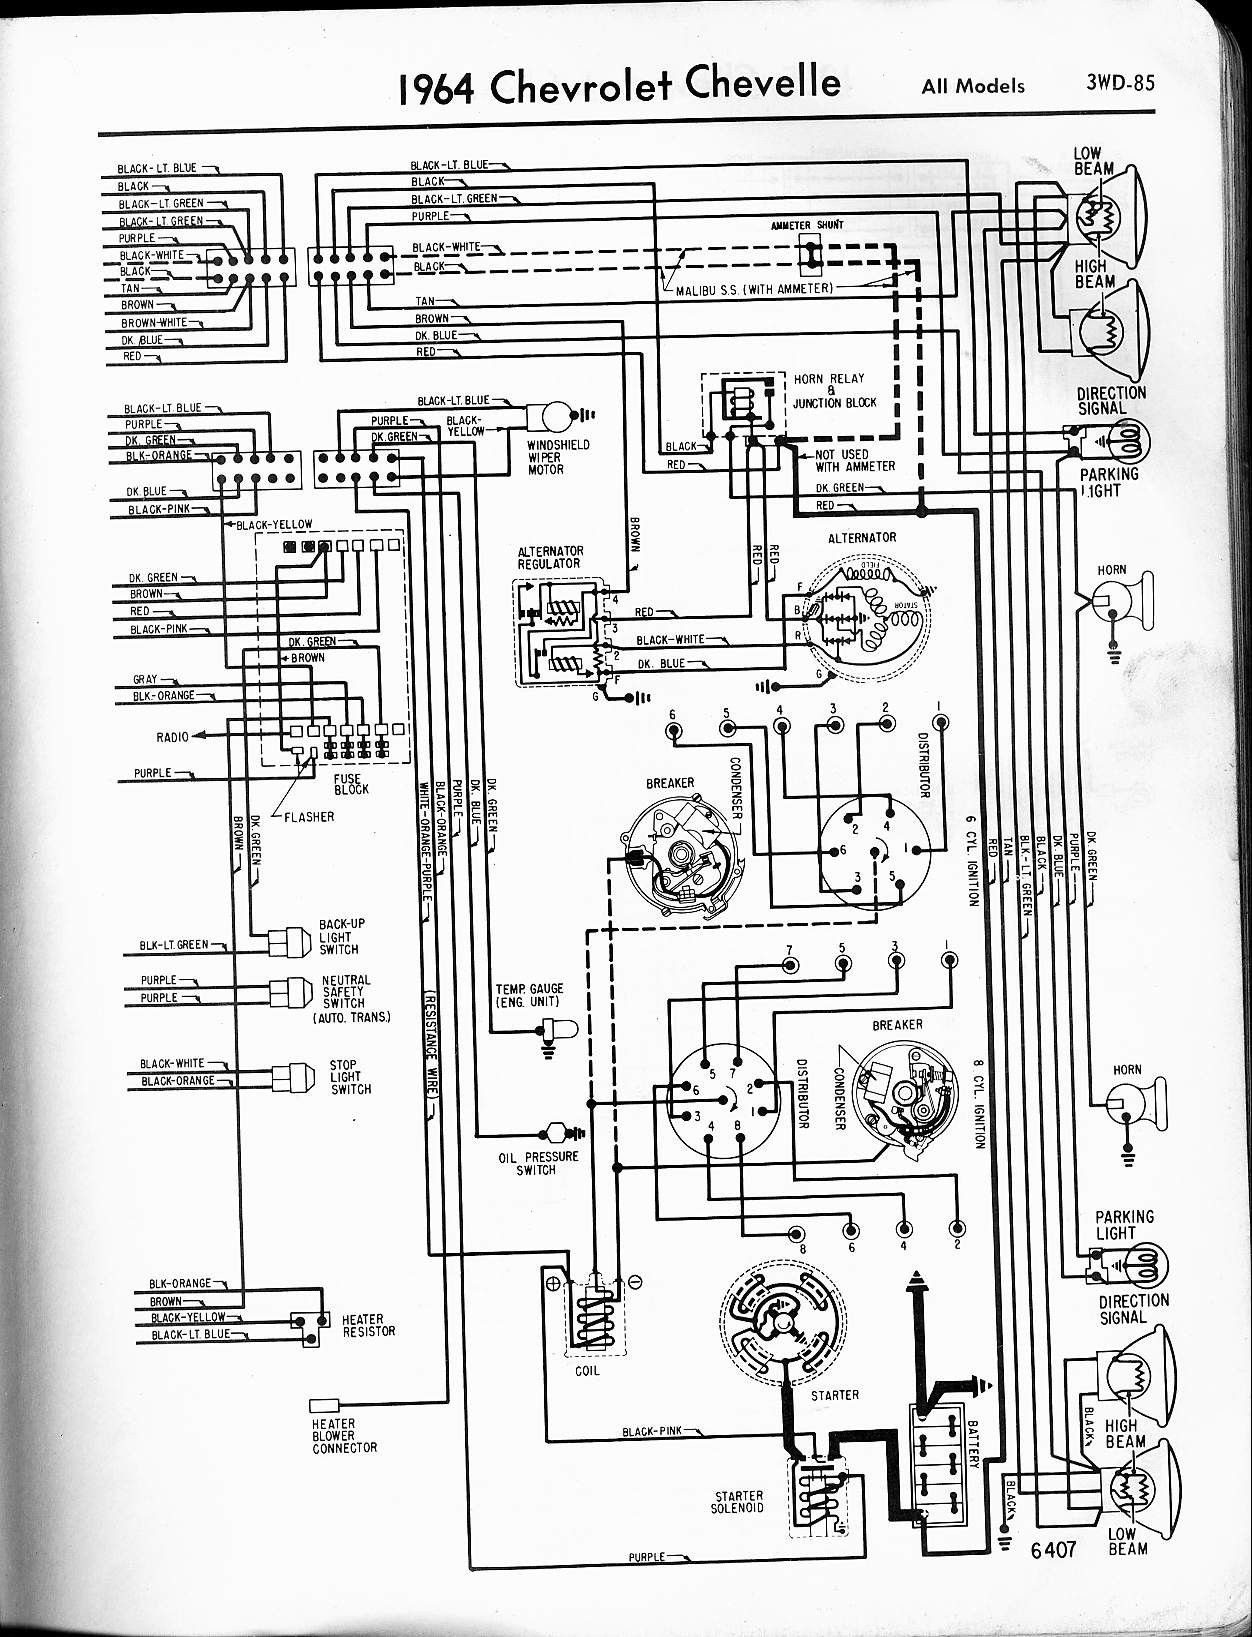 [SCHEMATICS_4UK]  E8518CF 2011 Chevy Equinox Fuse Box Diagram | Manual Book and Wiring  Schematic | 1966 Cadillac Fuse Box |  | Manual Book and Wiring Schematic